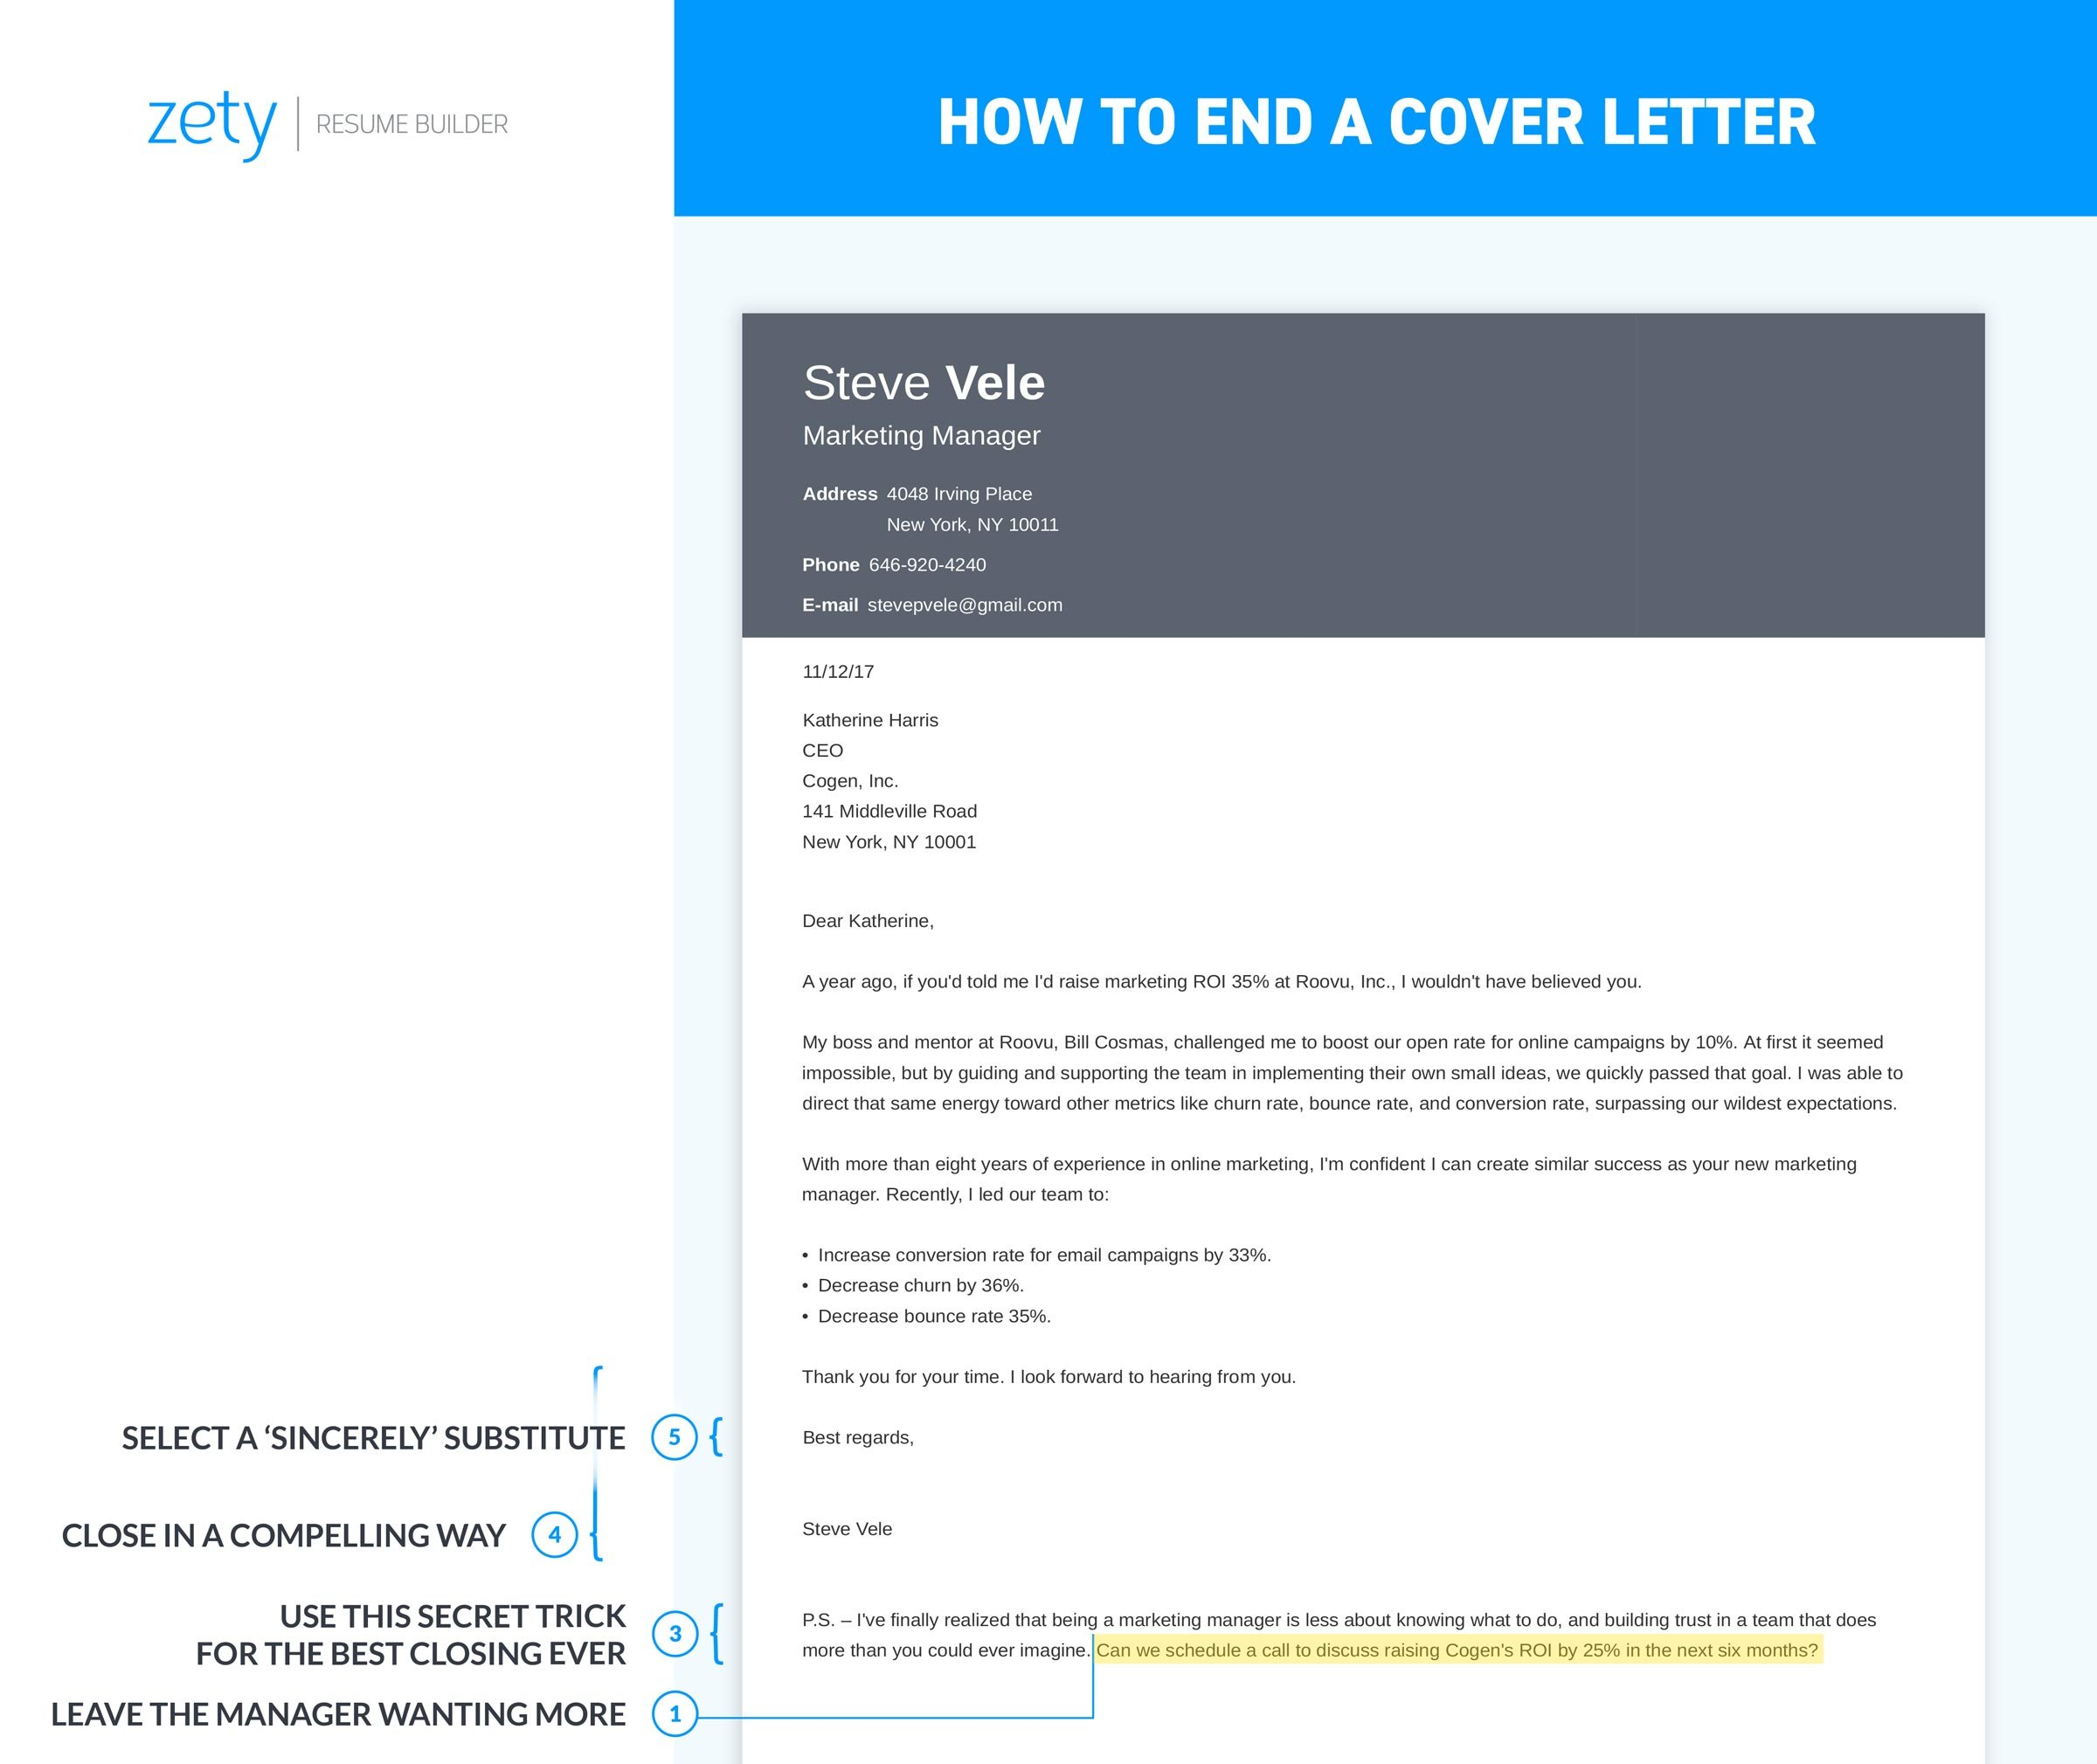 How to End a Cover Letter [20+ Closing Paragraph Examples]